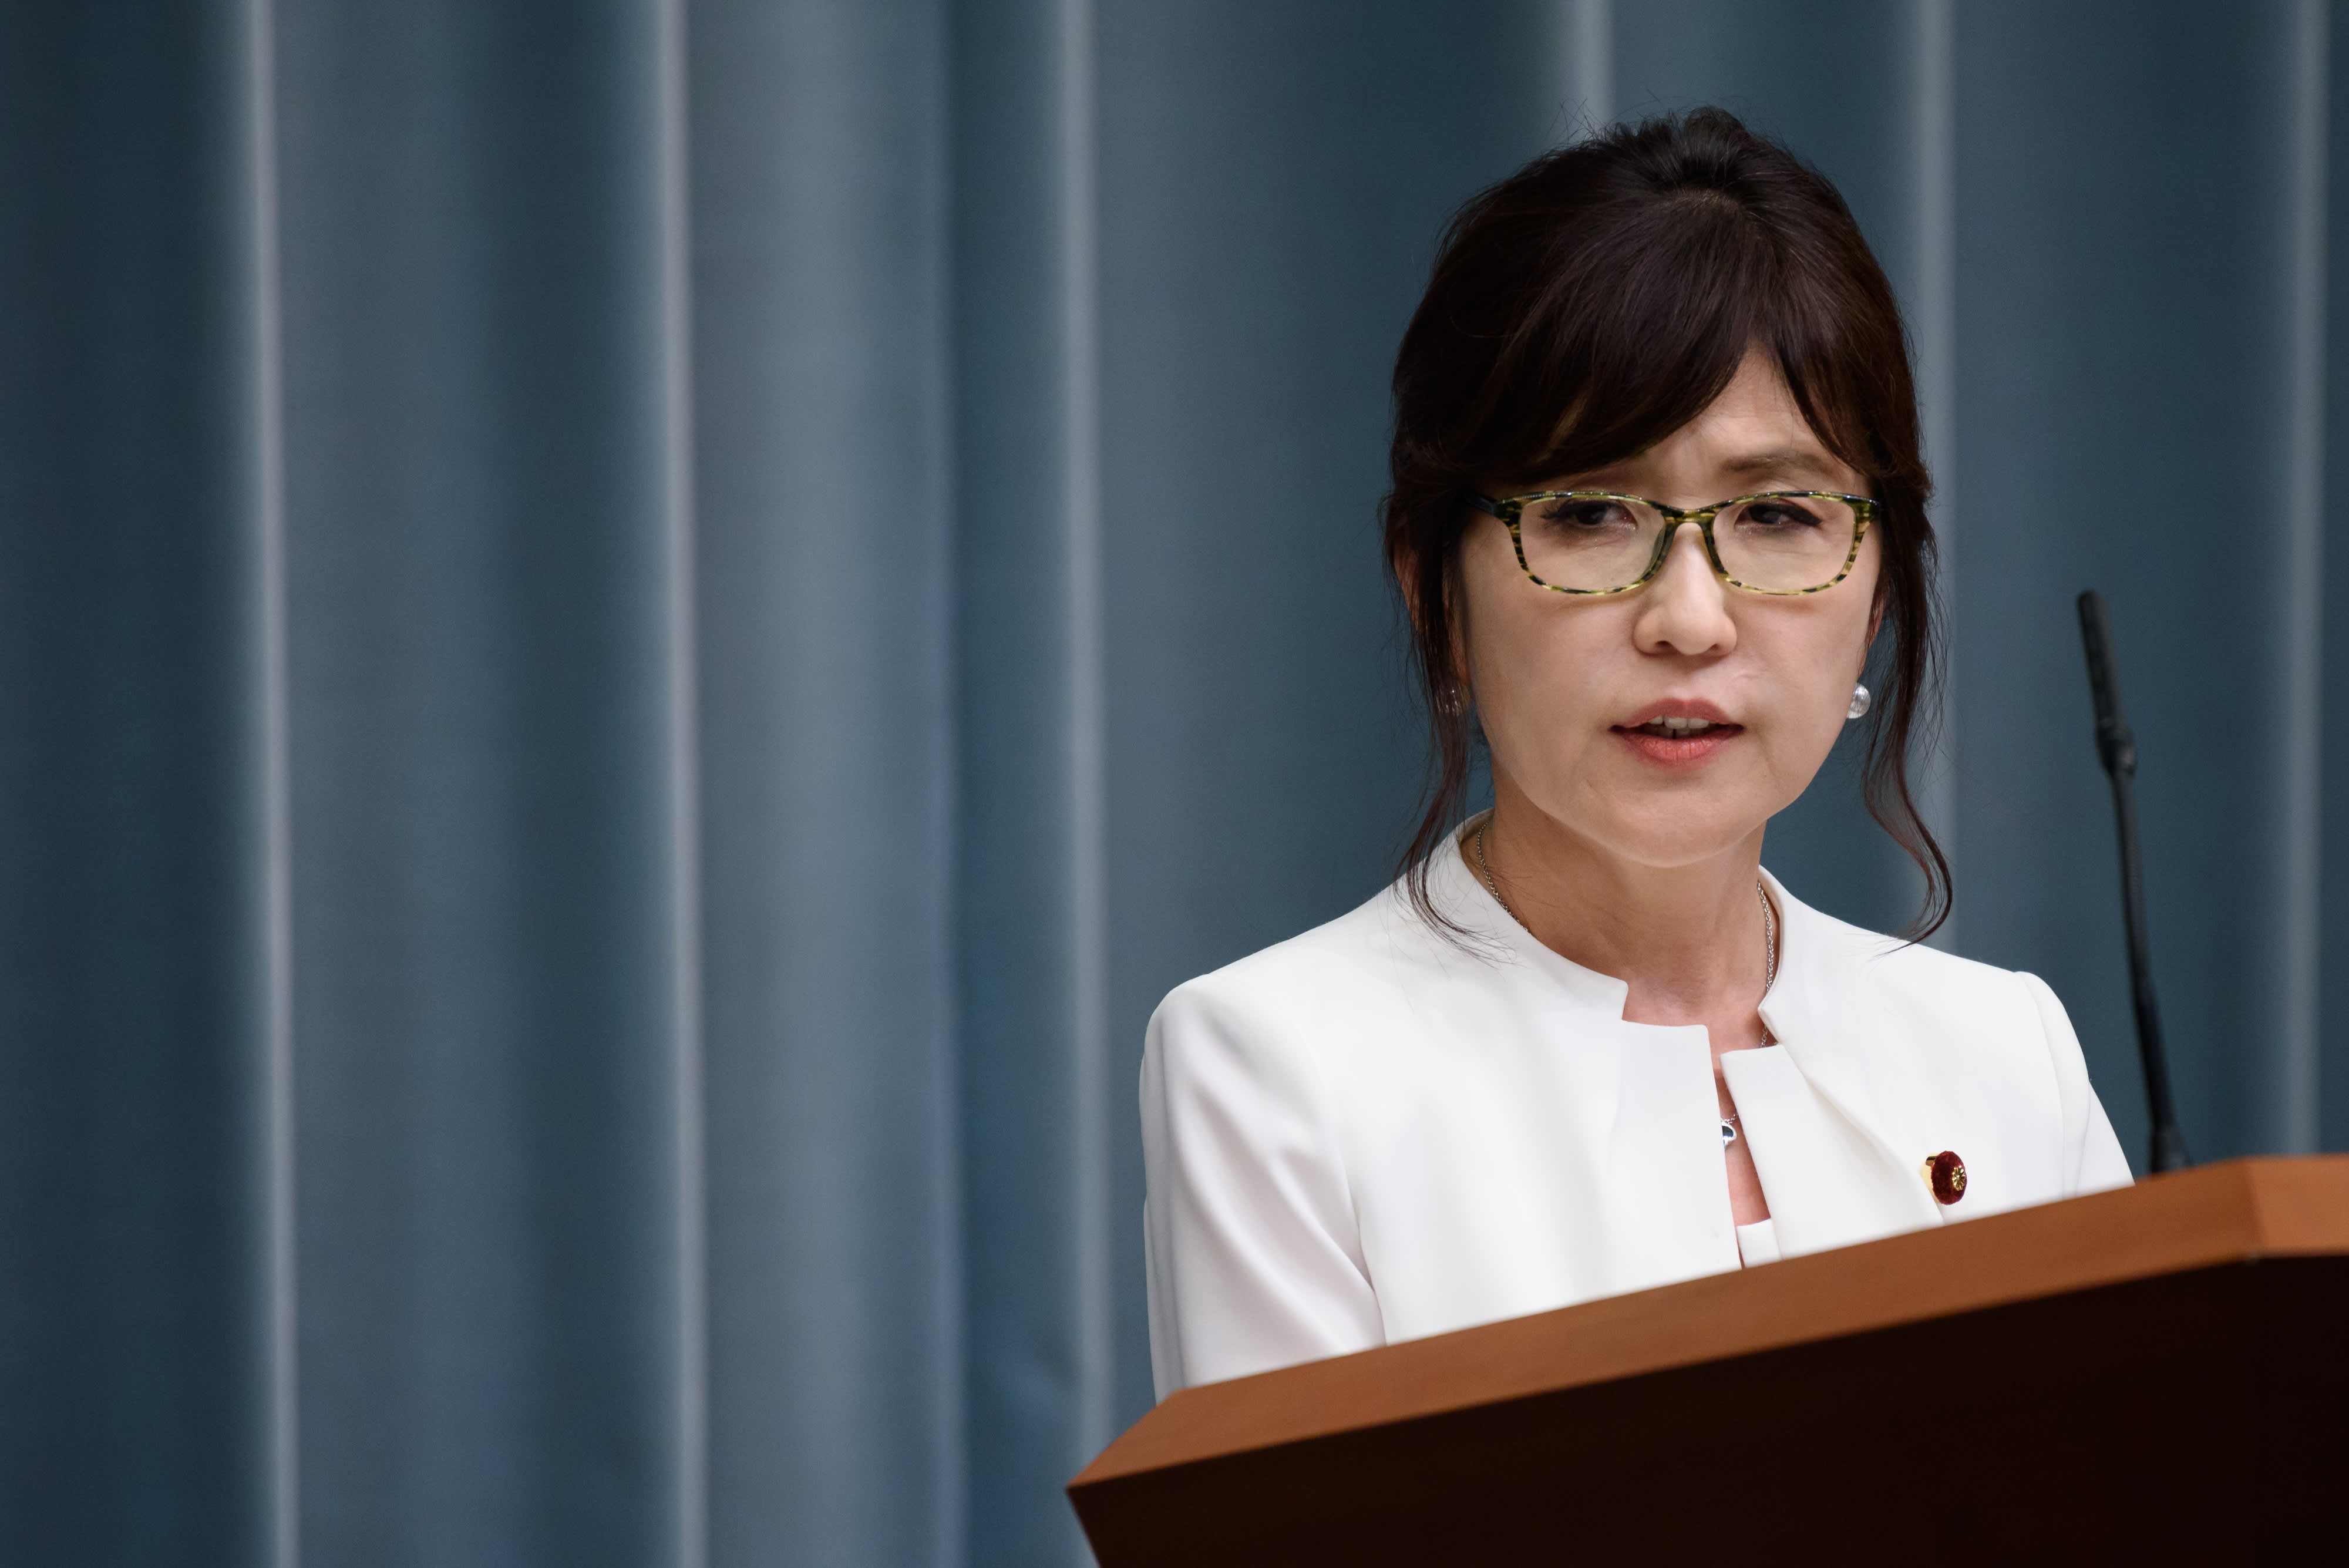 Japanese lawmaker Tomomi Inada has ambitions to be the country's next prime minister.